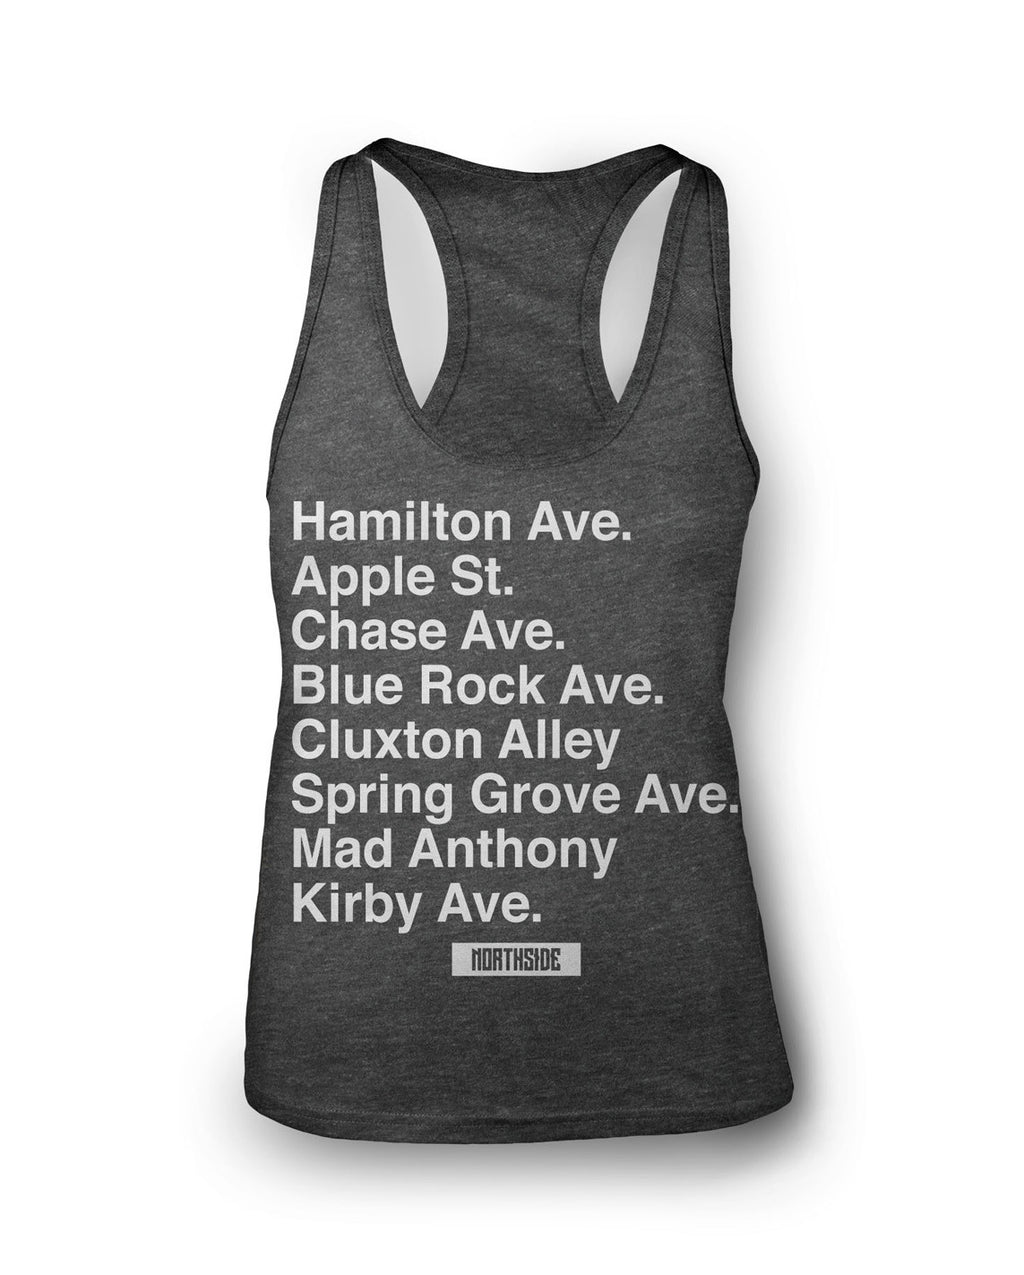 Northside Streets Tank for Her - Originalitees